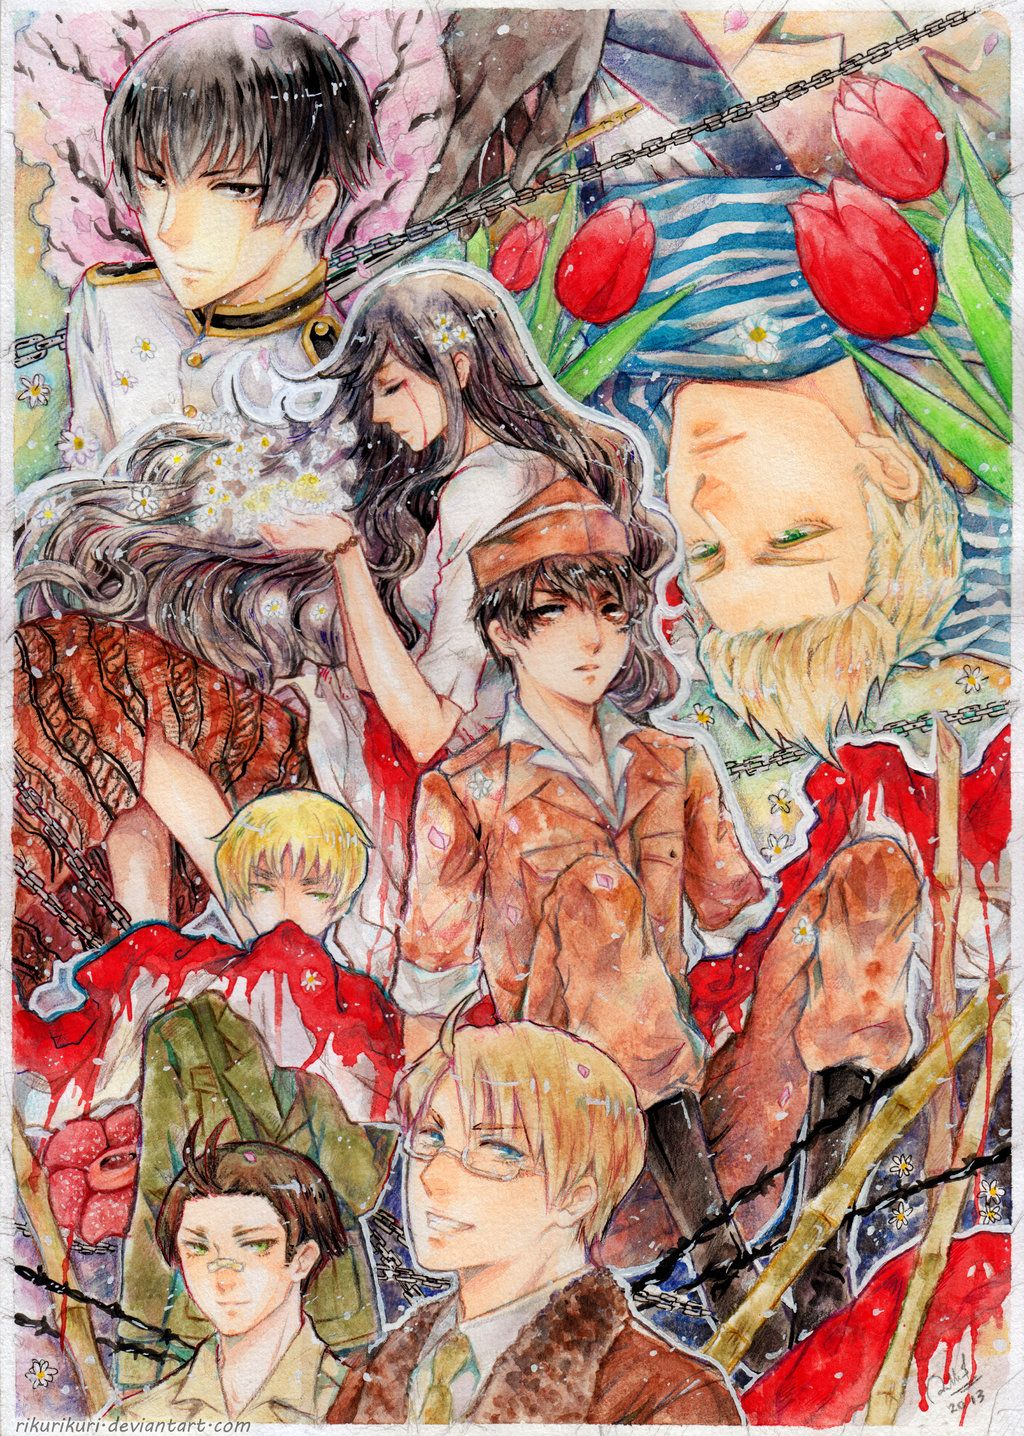 aph by on deviantART Gambar